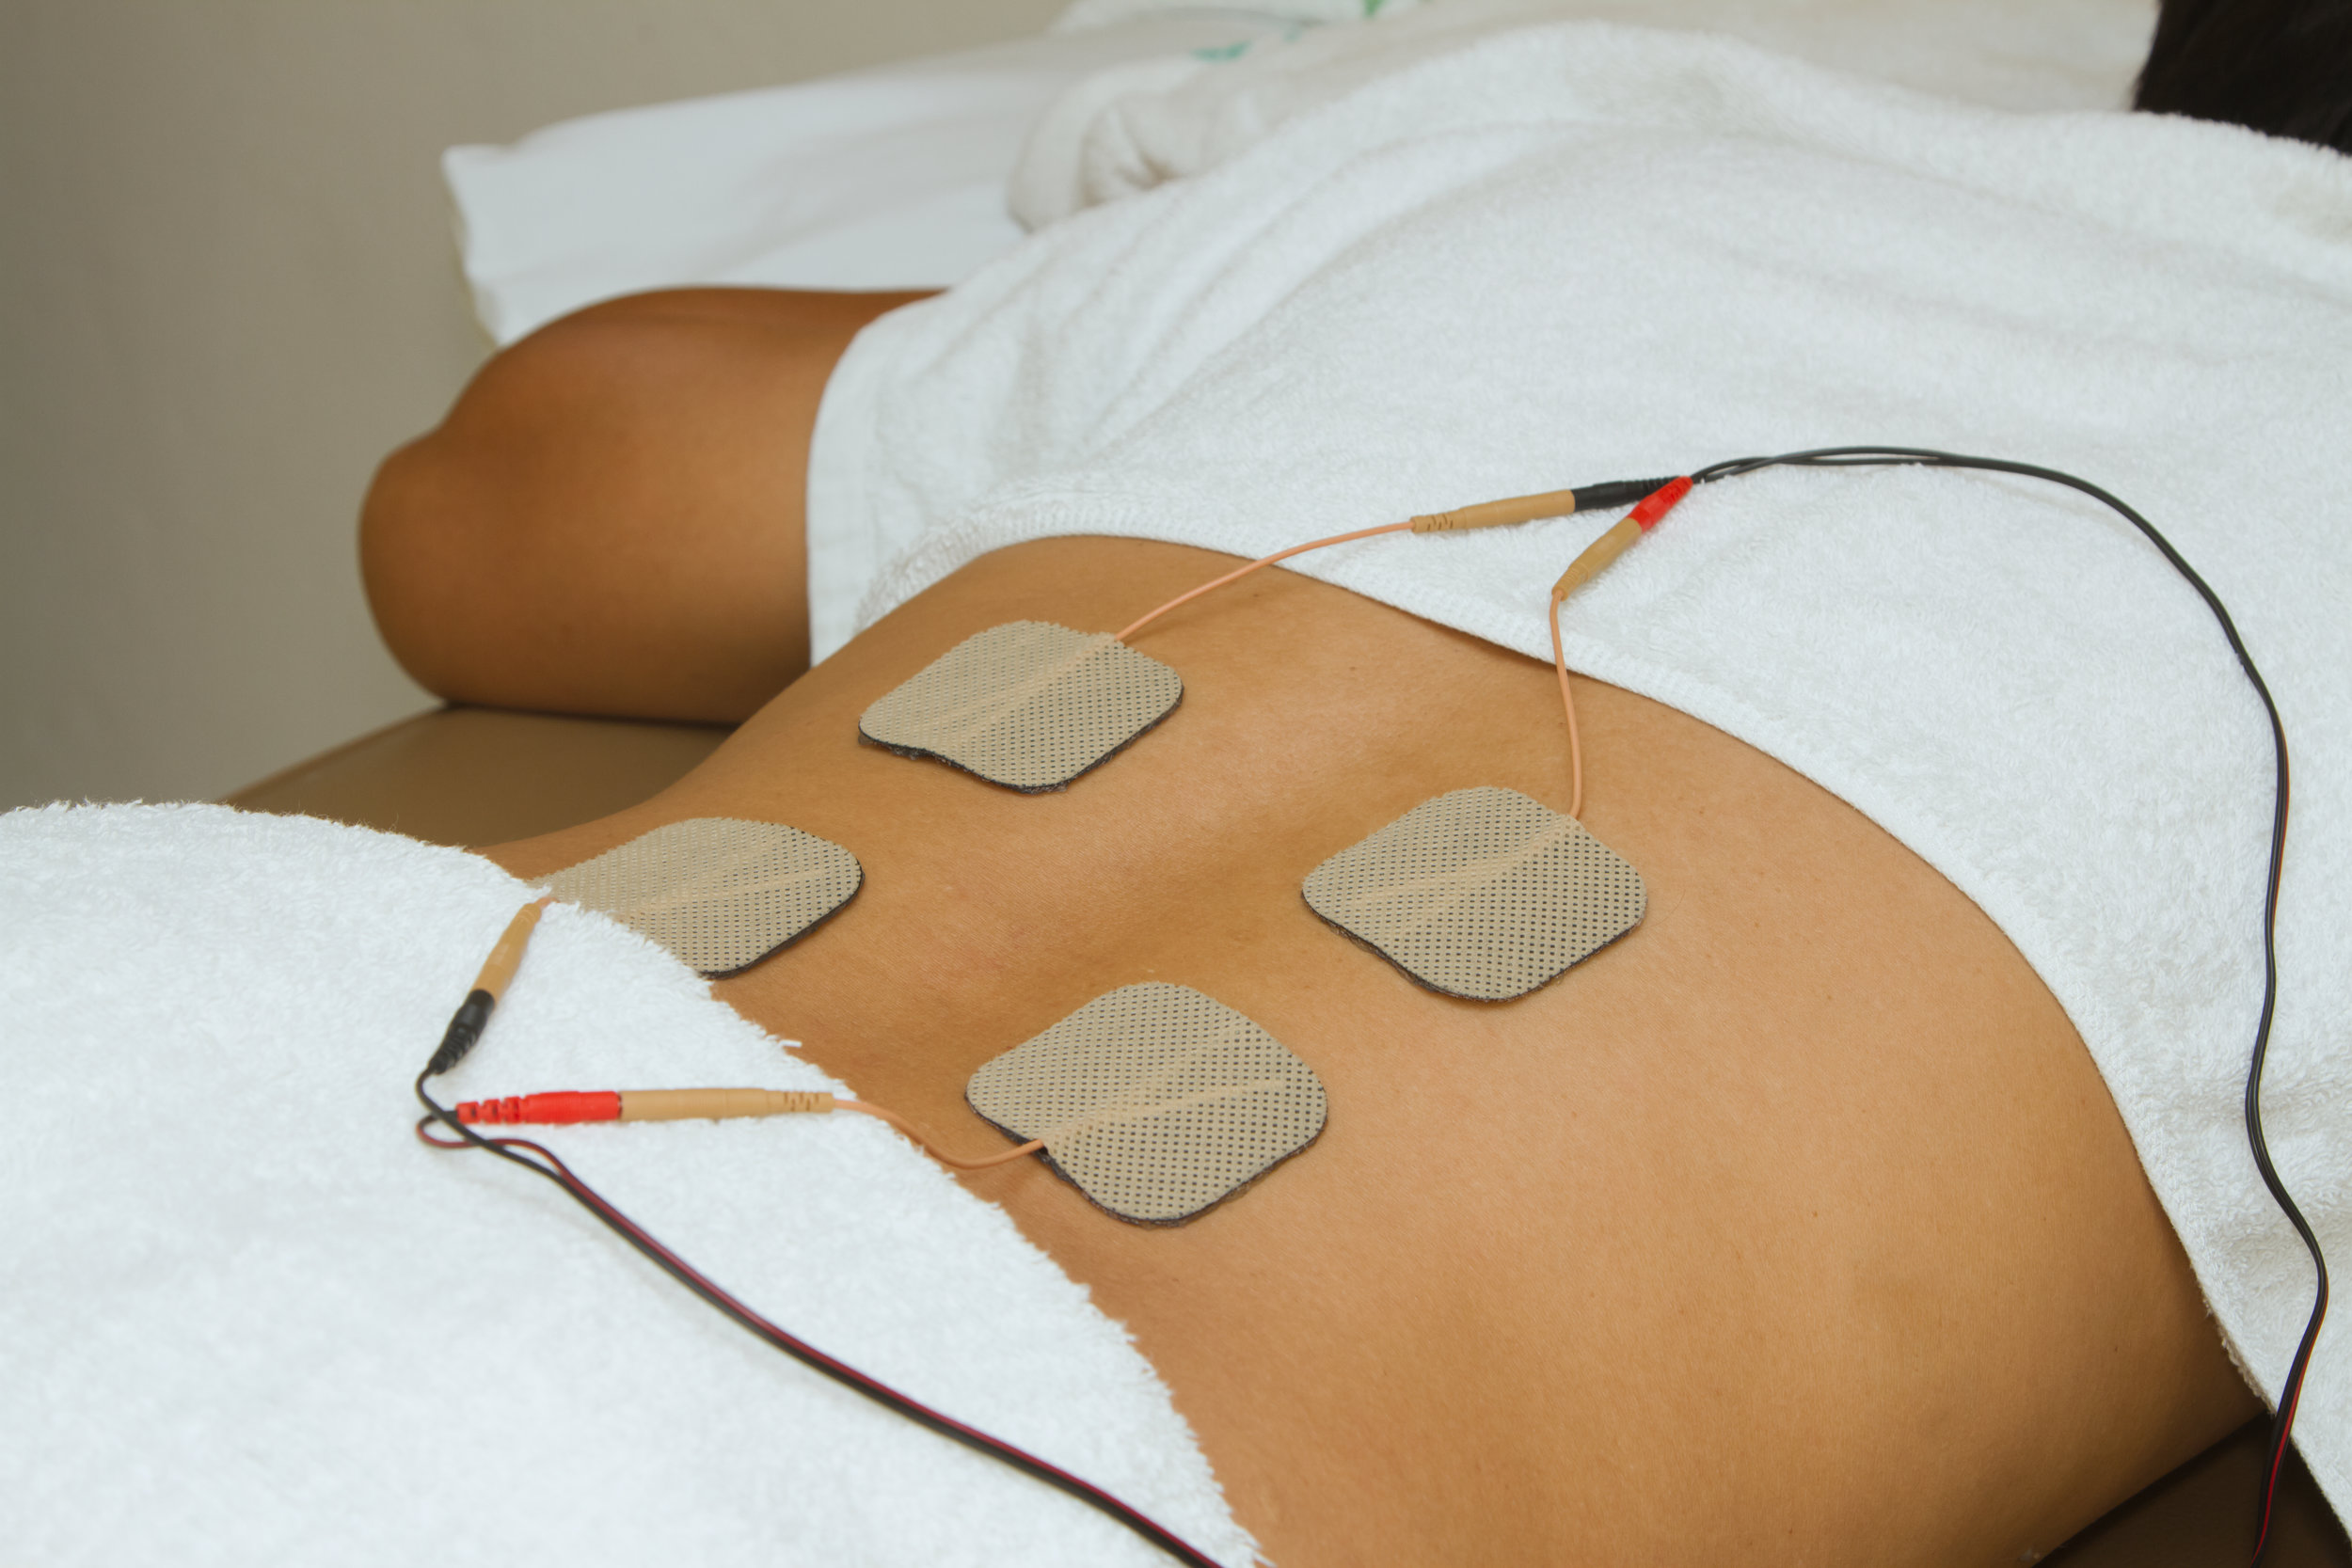 Electric Stim - Electric stimulation rehabilitates the muscles by helping them contract and relax at specific intervals and intensity.